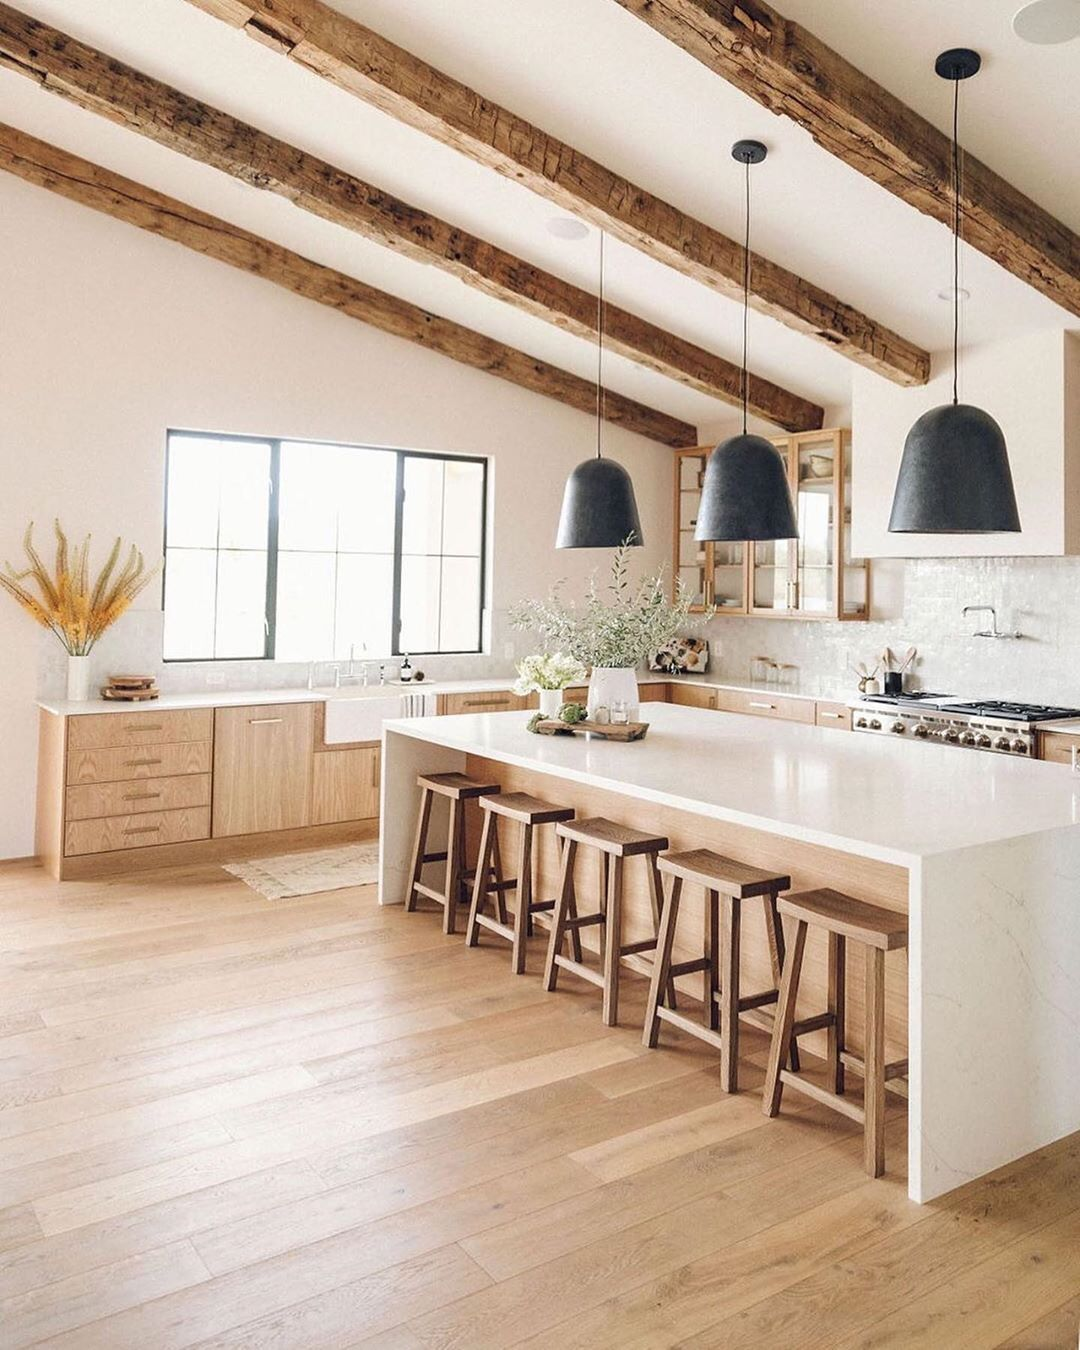 Great Kitchens Every Day On Instagram We Love The Warm Honey Tones Of The Wood In This Space Paired W Interior Design Kitchen Kitchen Style House Design